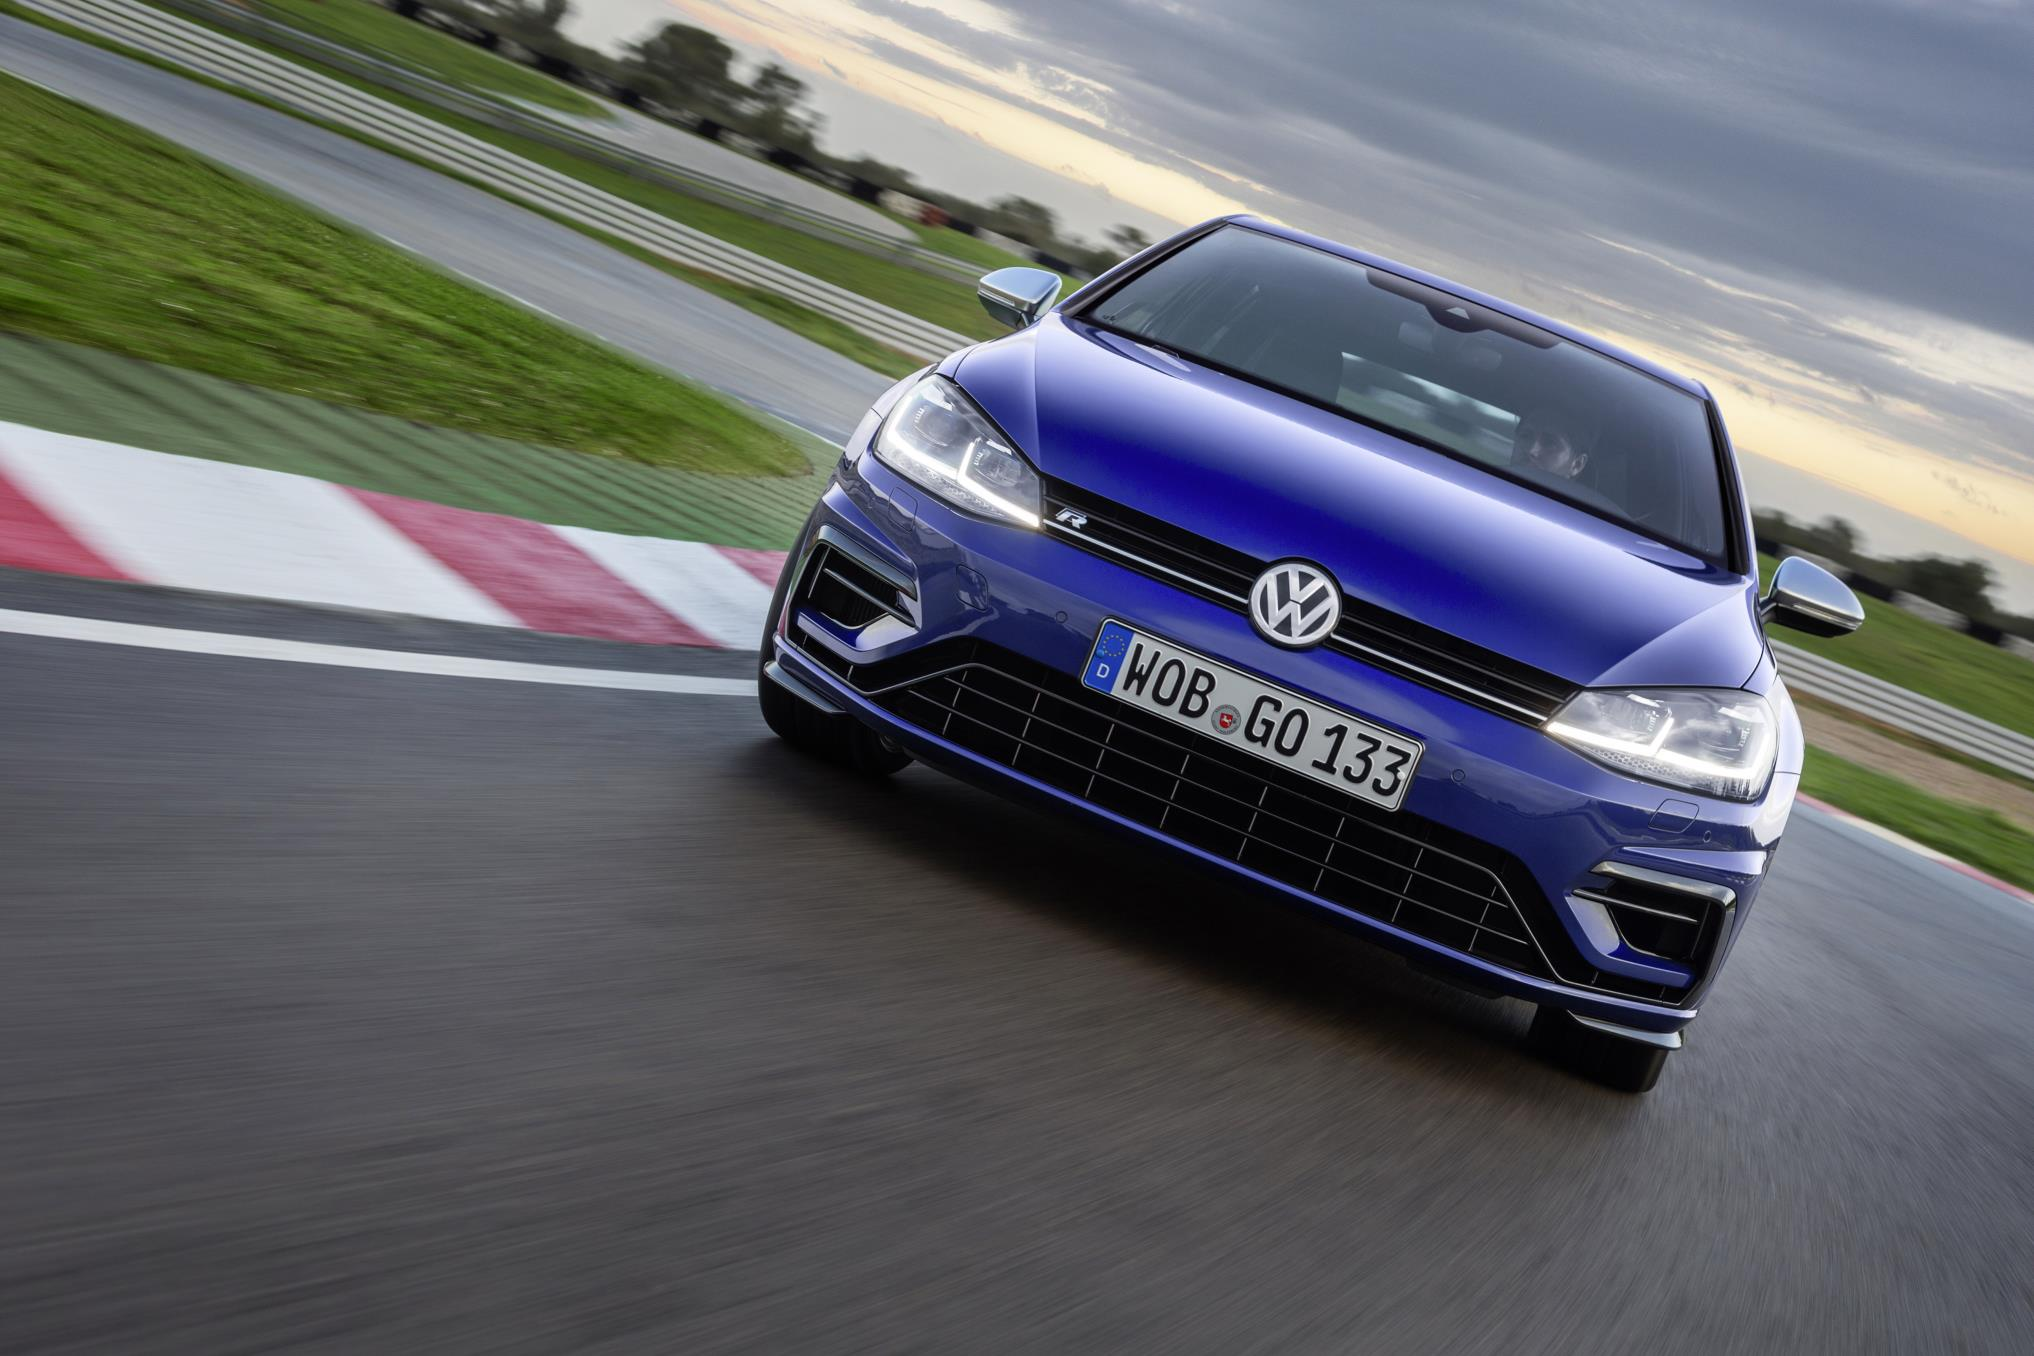 The Golf R's all-wheel-drive system makes it unstoppable in all conditions